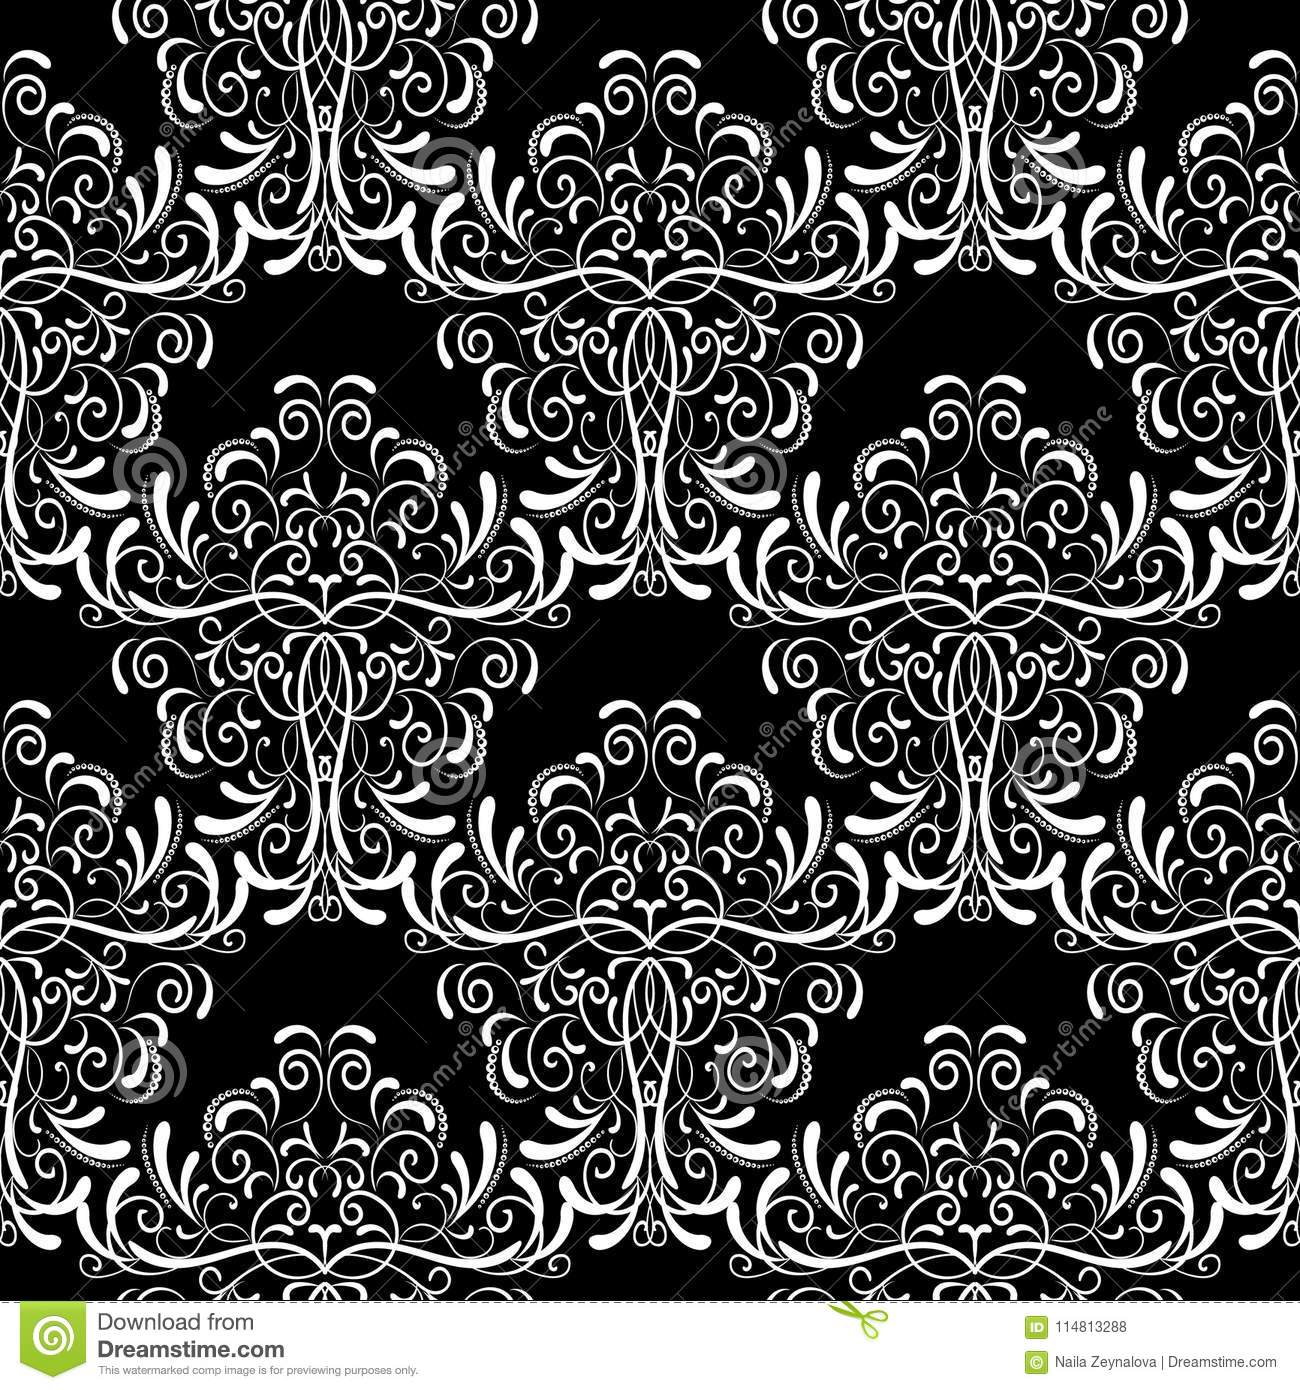 Vintage Black And White Damask Seamless Pattern Vector Floral Stock